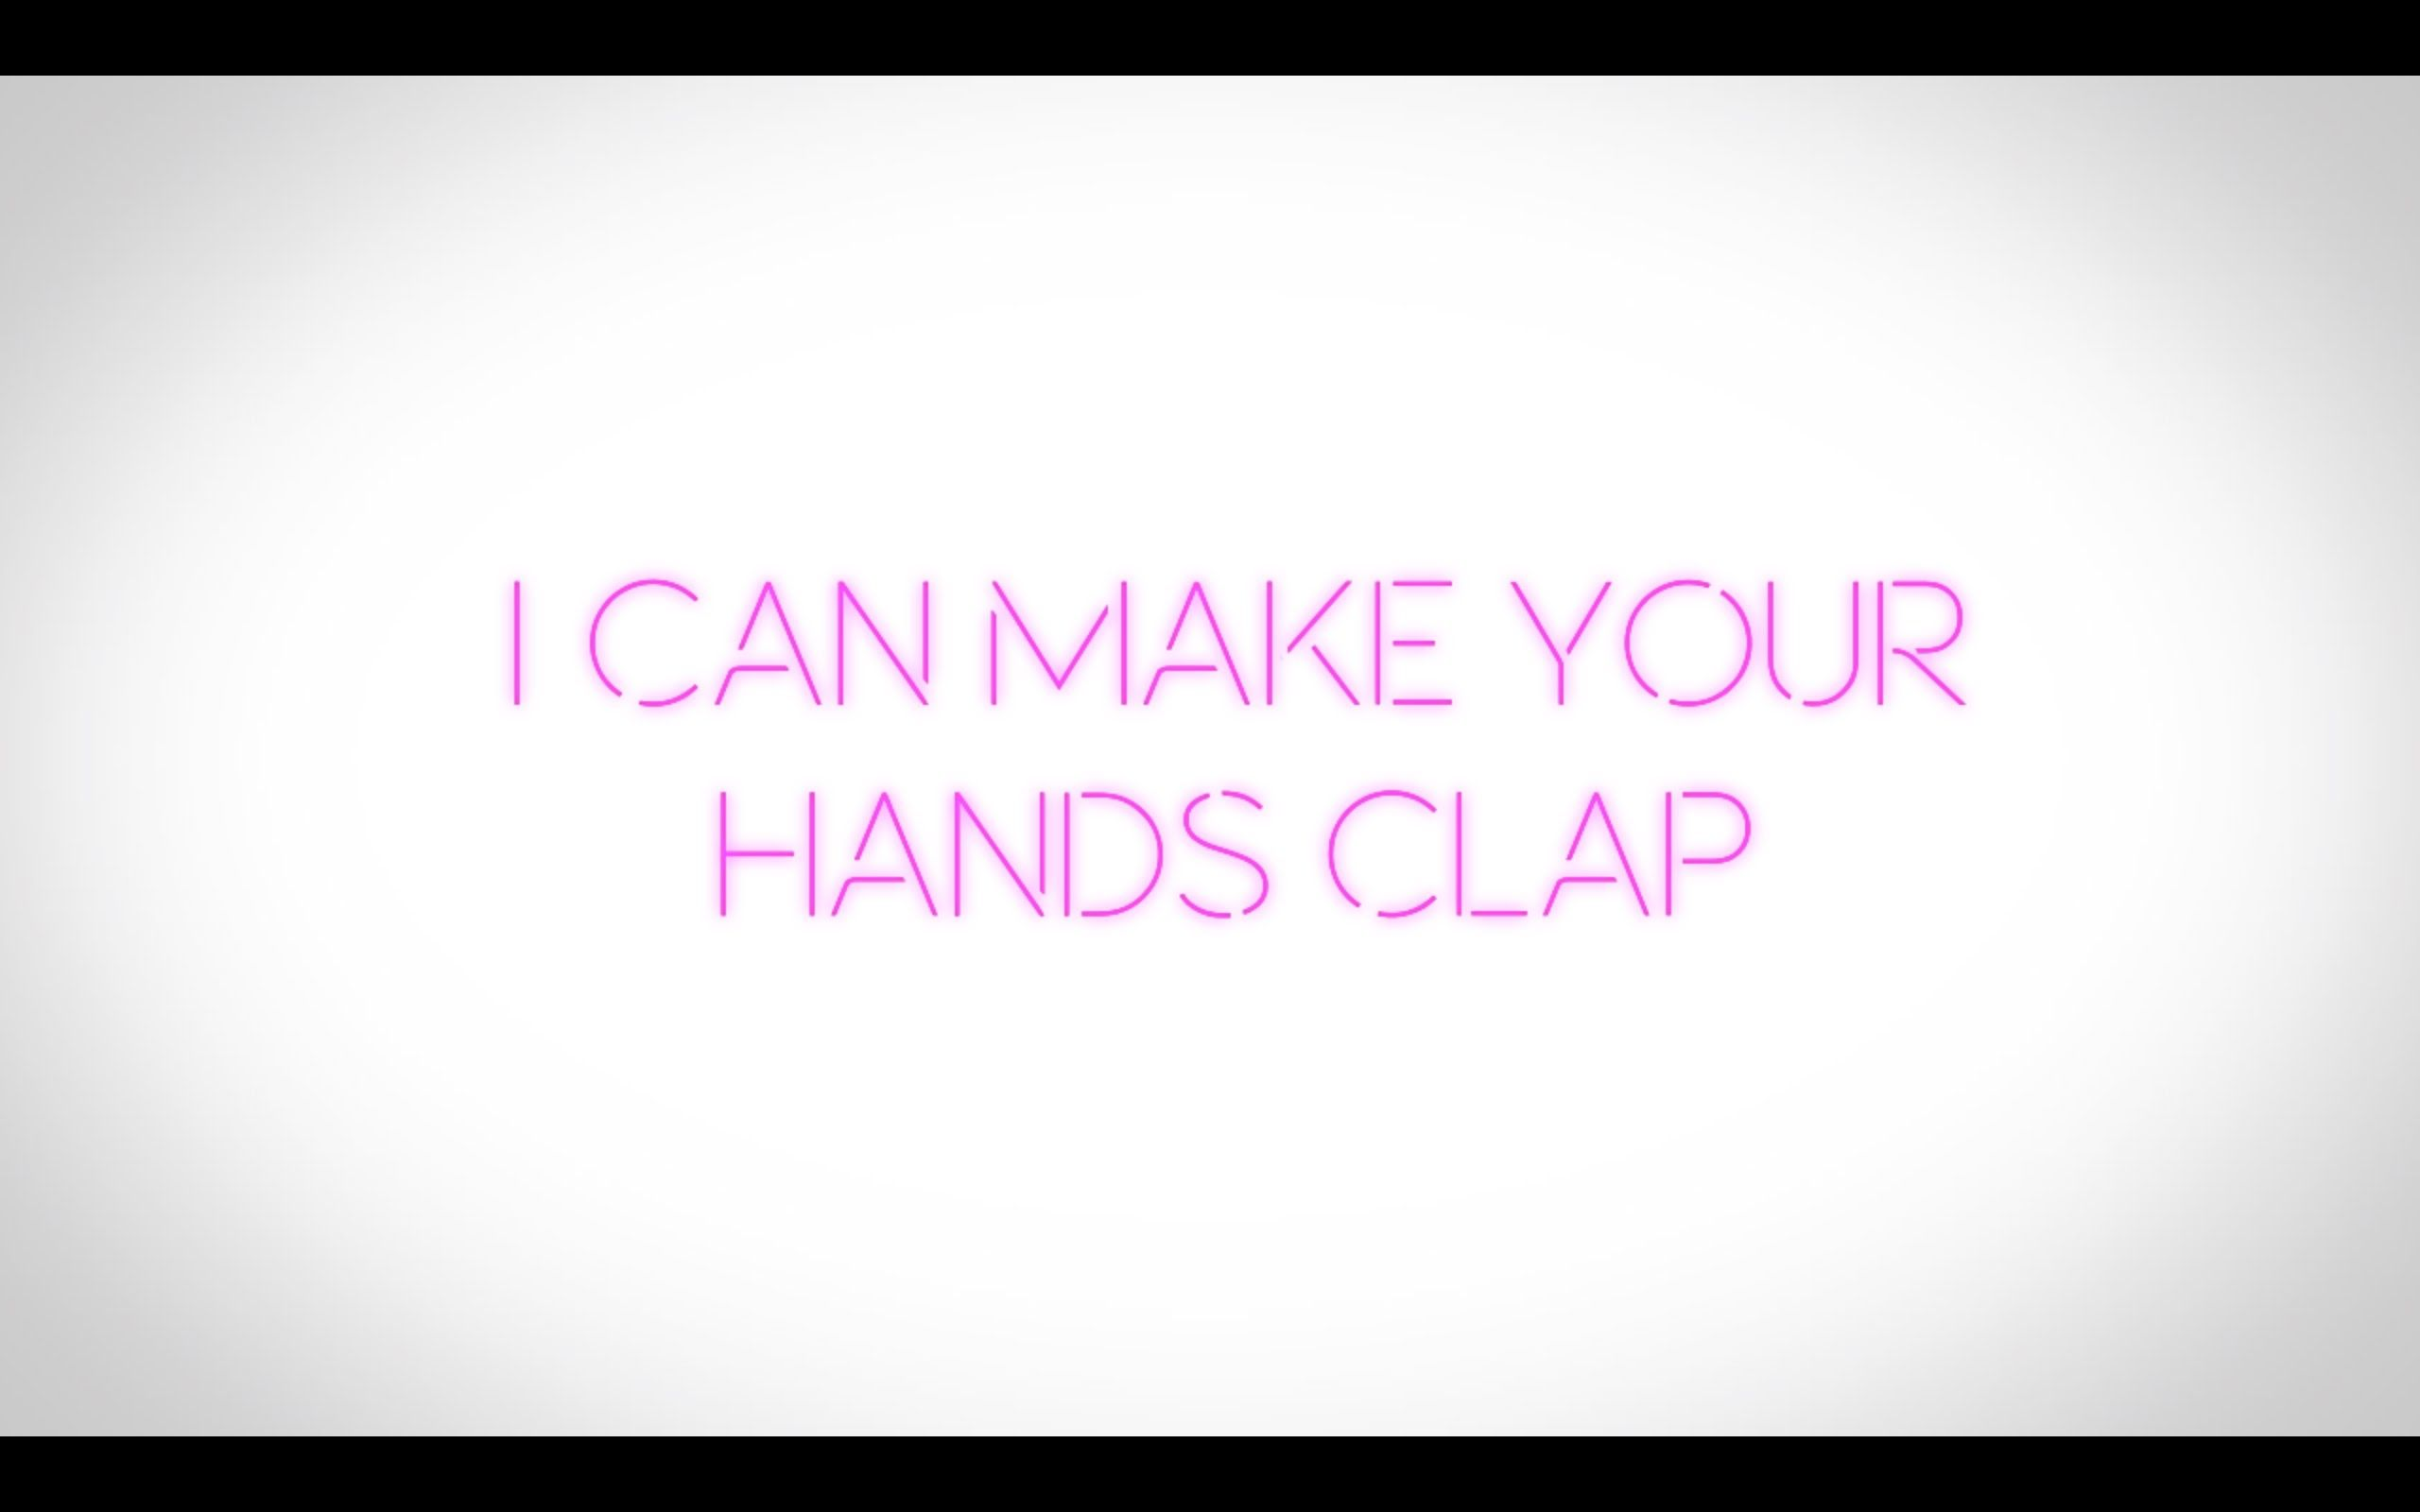 Handclap Fitz And The Tantrums Lyrics Lyrics Music Lyrics Greatest Songs Somebody save your soul cause you've been sinning in this city i know too many troubles, all these lovers got you losing control you're like a drug to me, a luxury, my sugar and gold i want your. handclap fitz and the tantrums lyrics